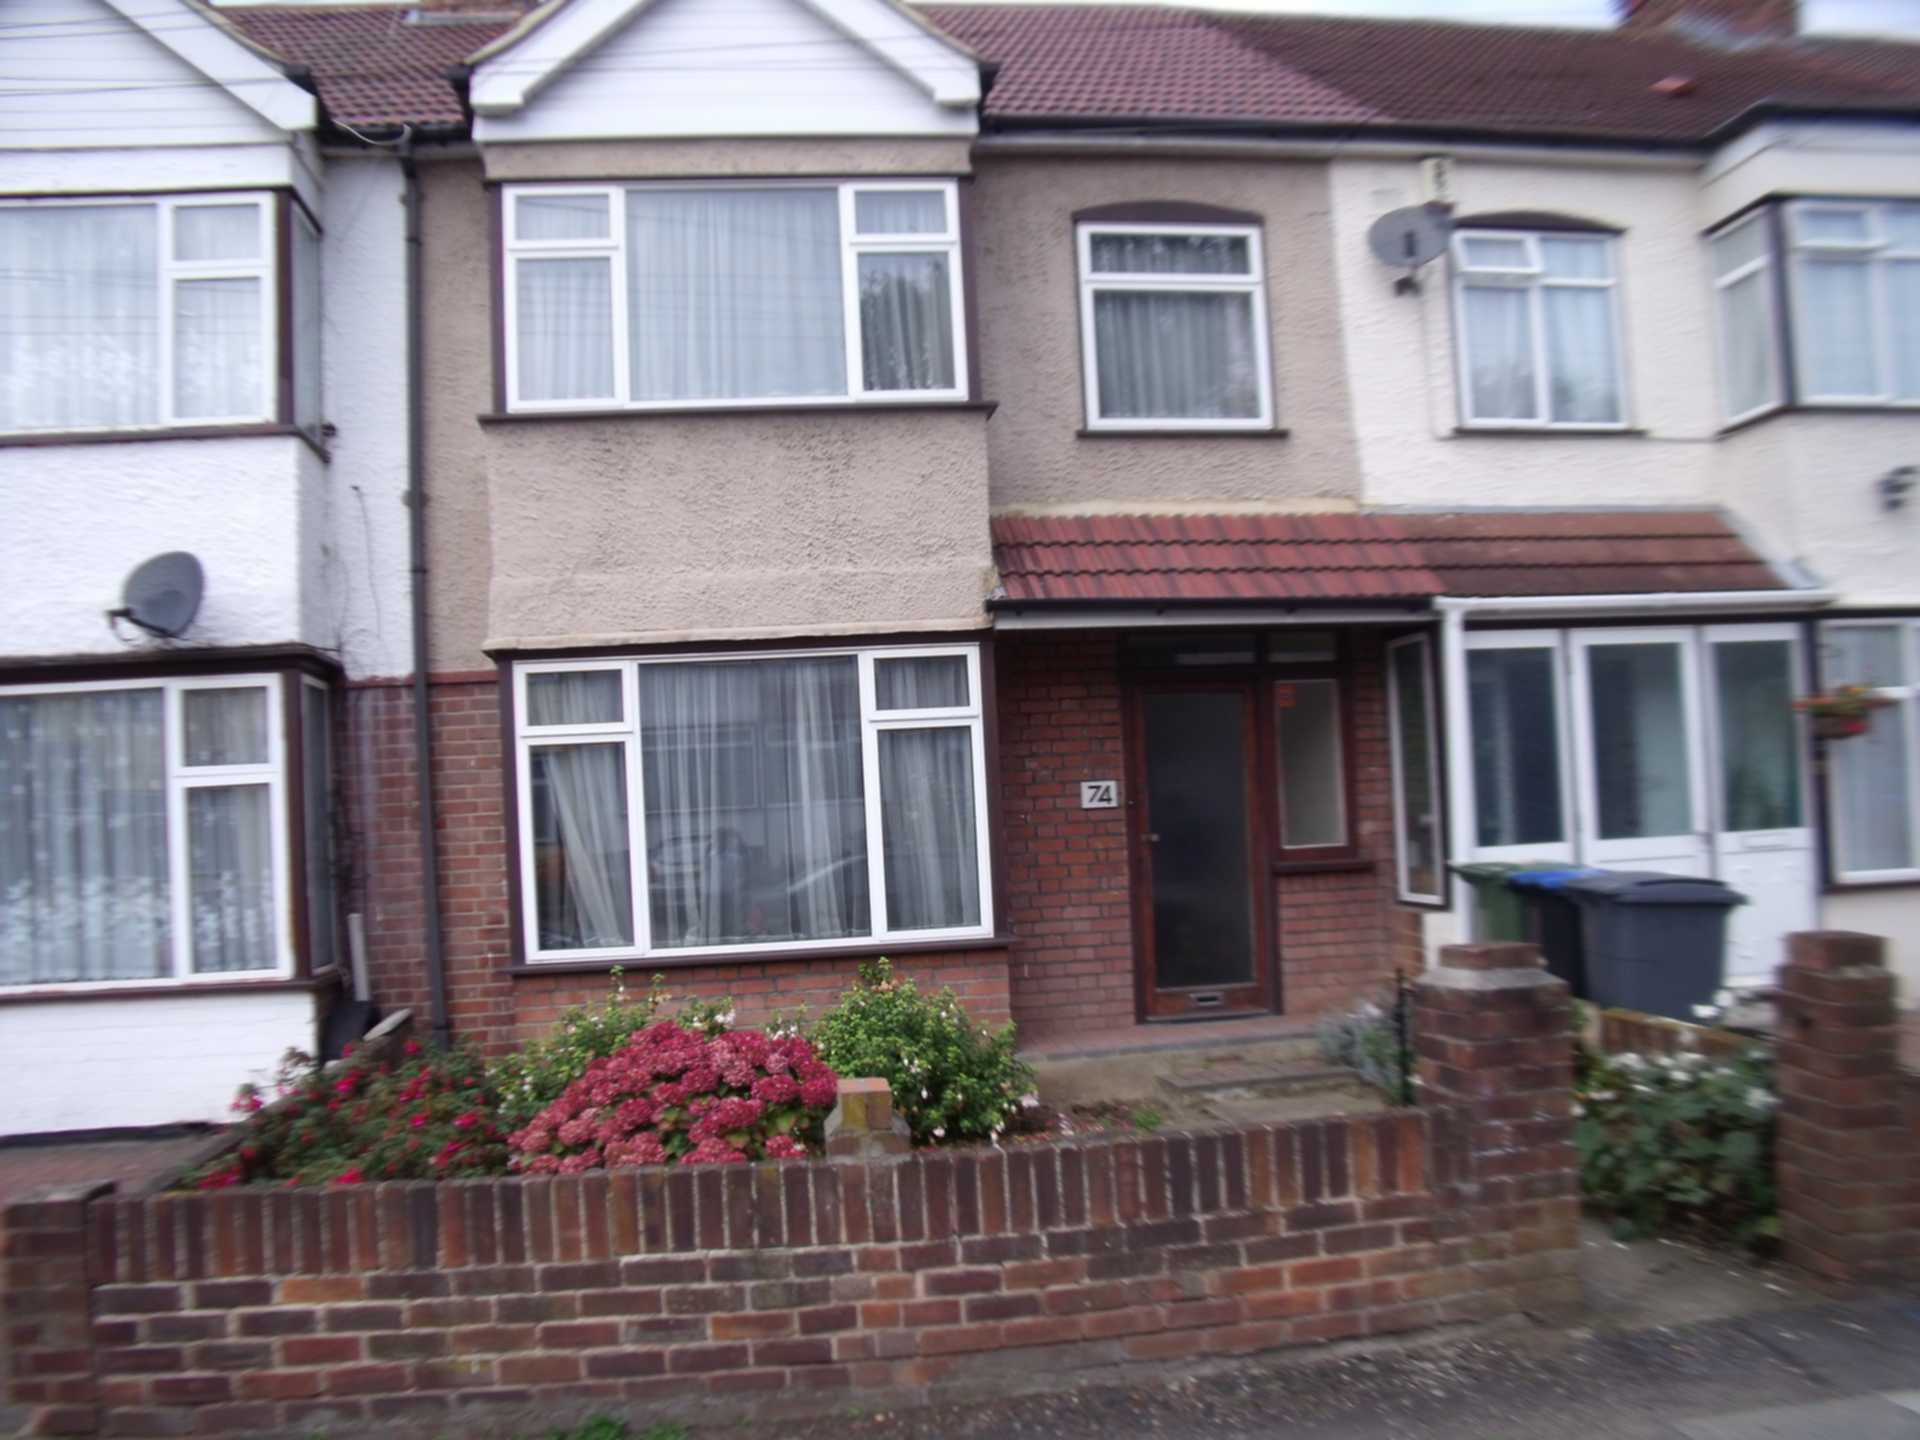 Kingsmead  Colindale  NW9